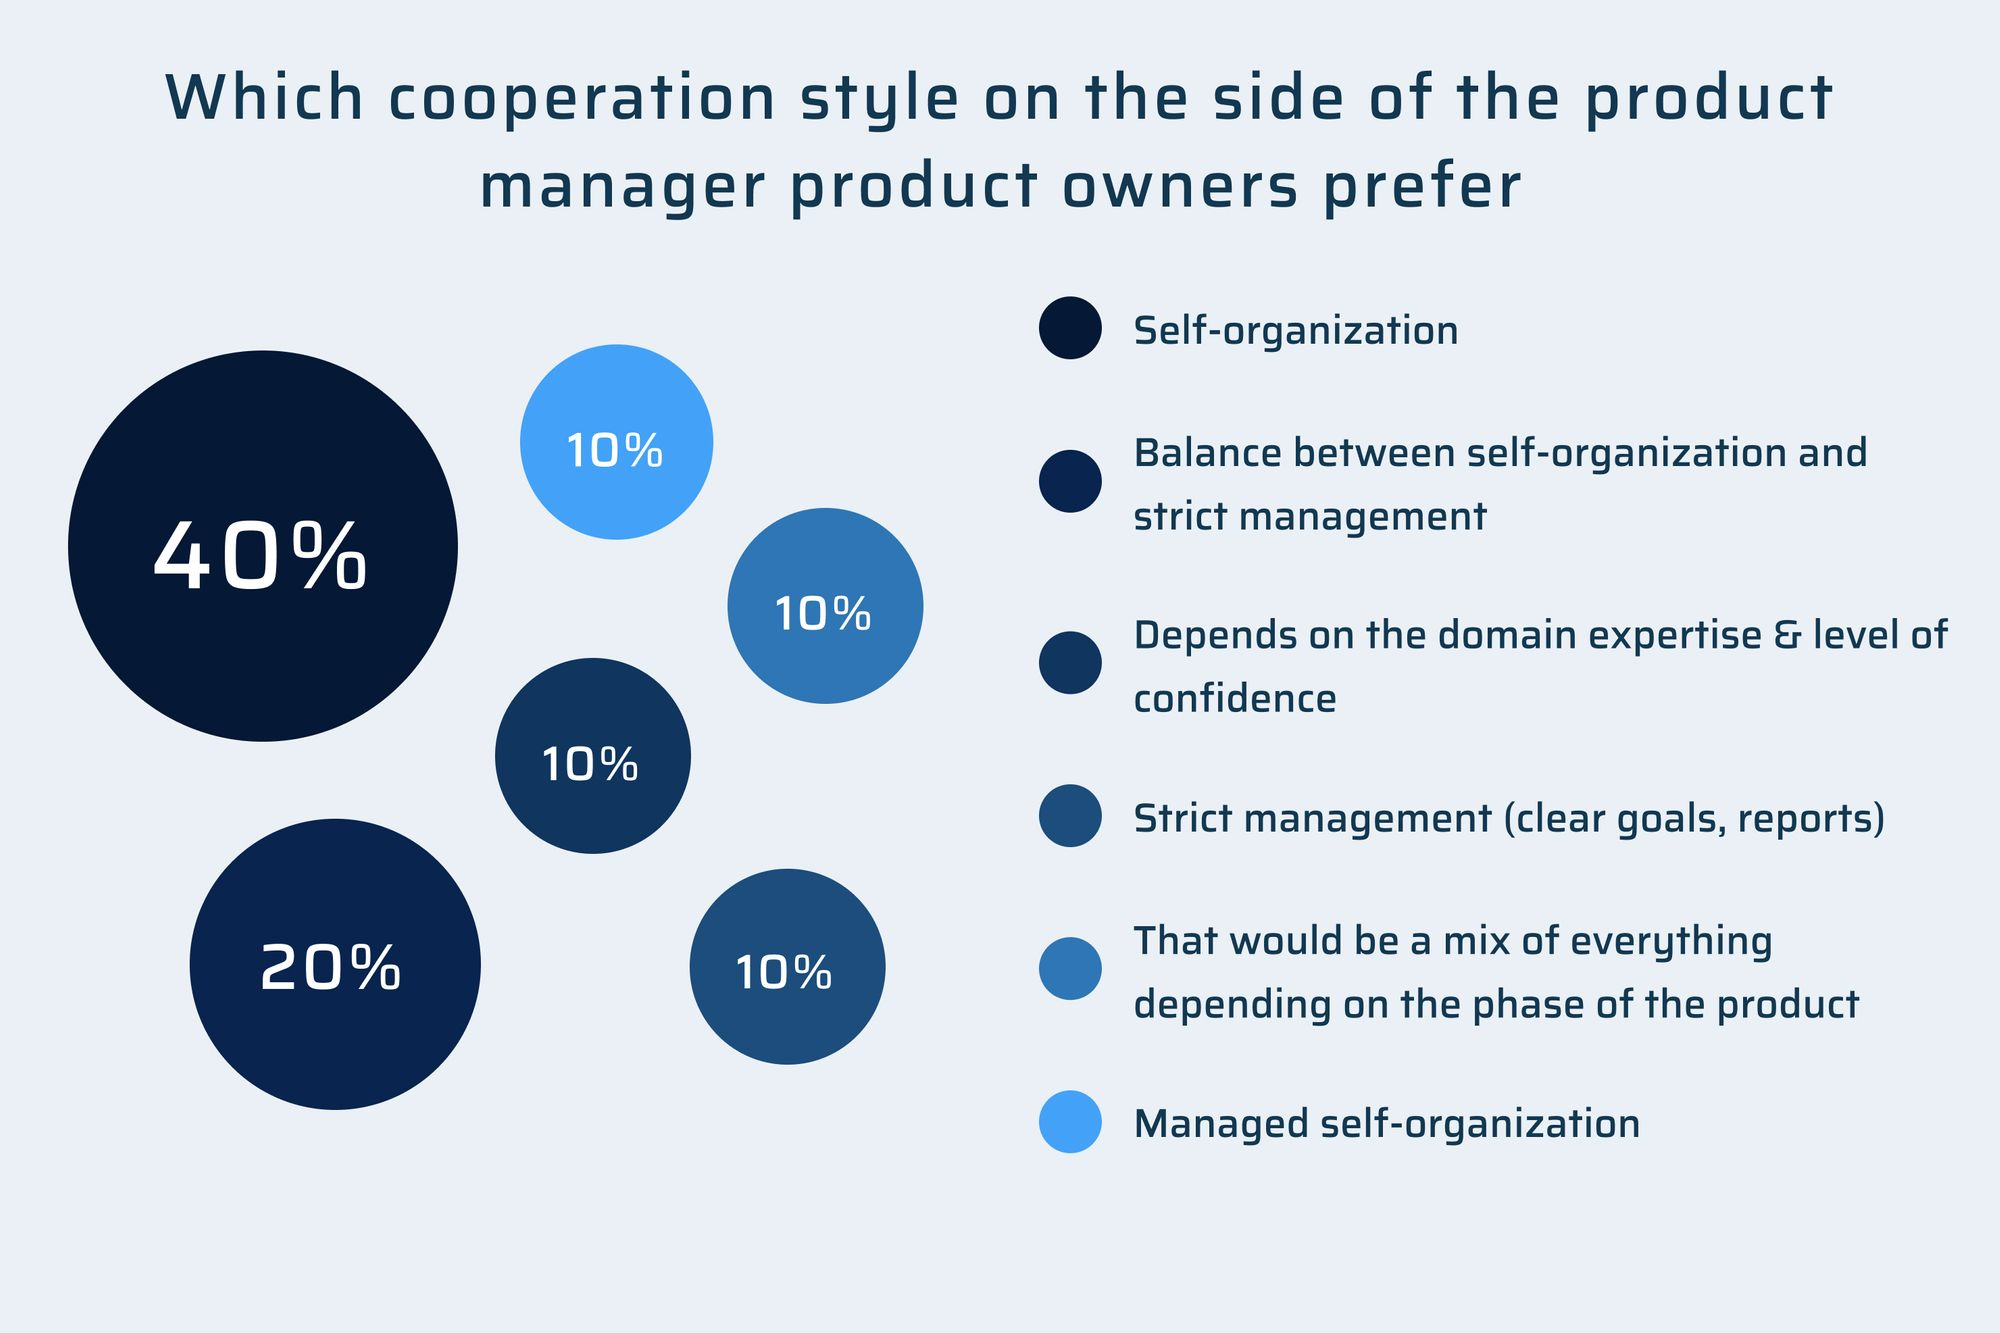 Which cooperation style product owners prefer